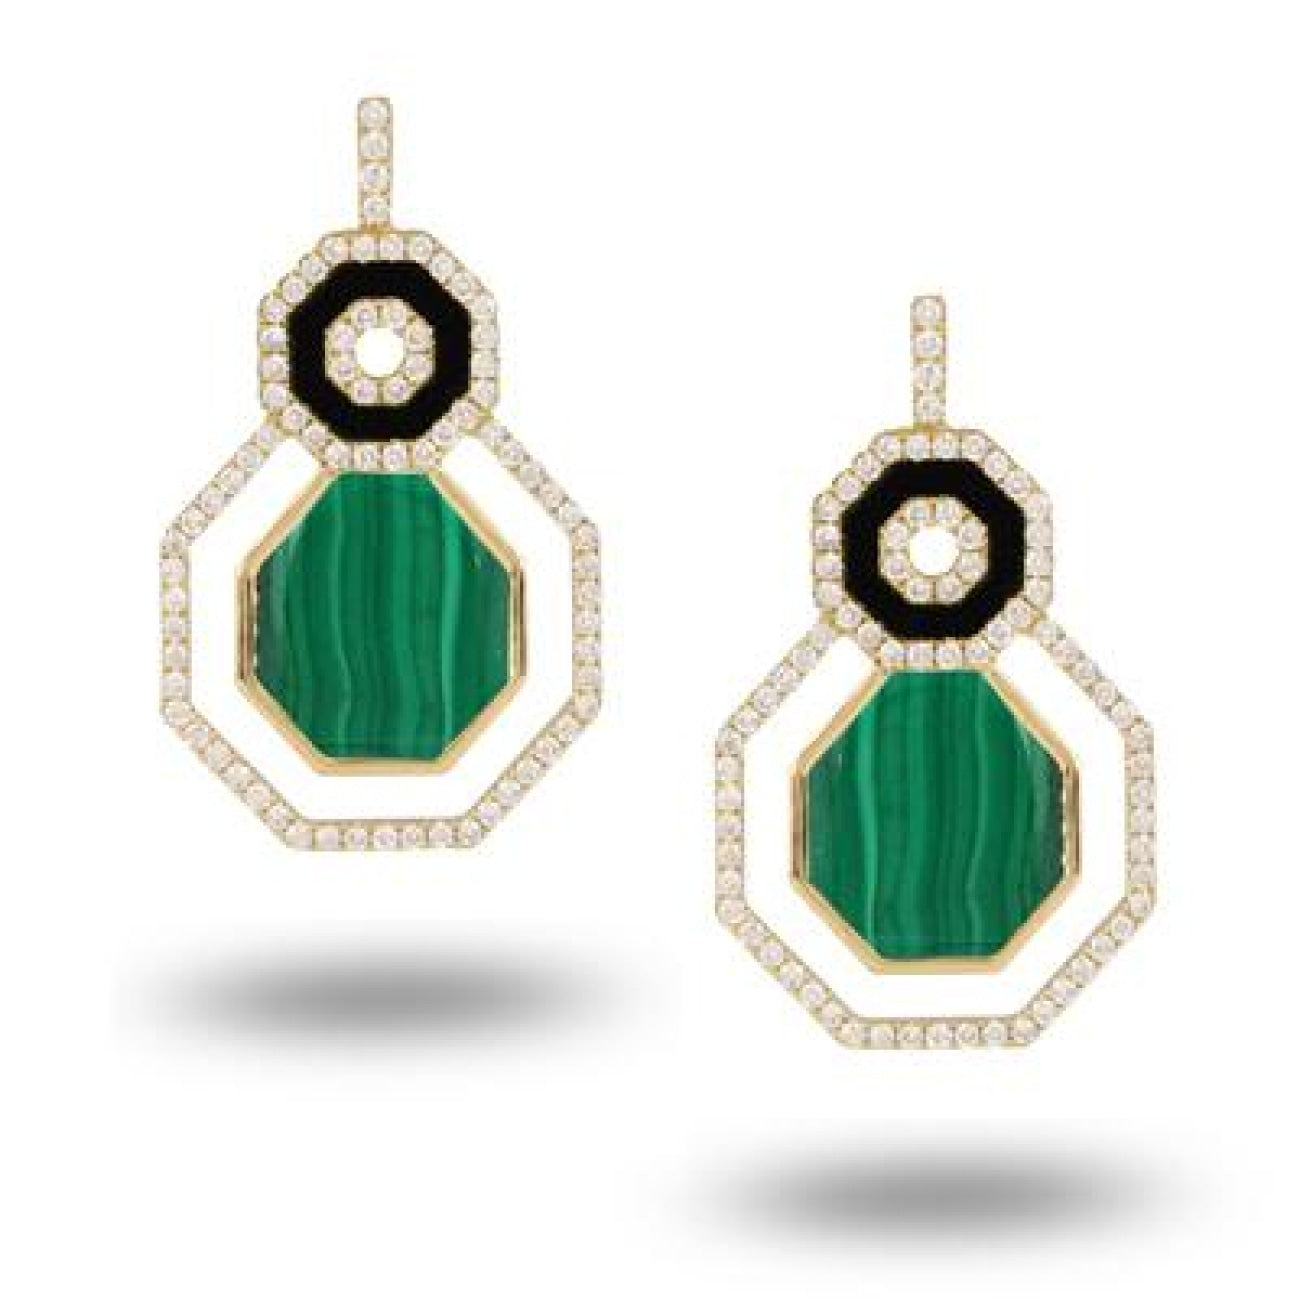 Doves Jewelry - E8237BOMC VERDE | Manfredi Jewels